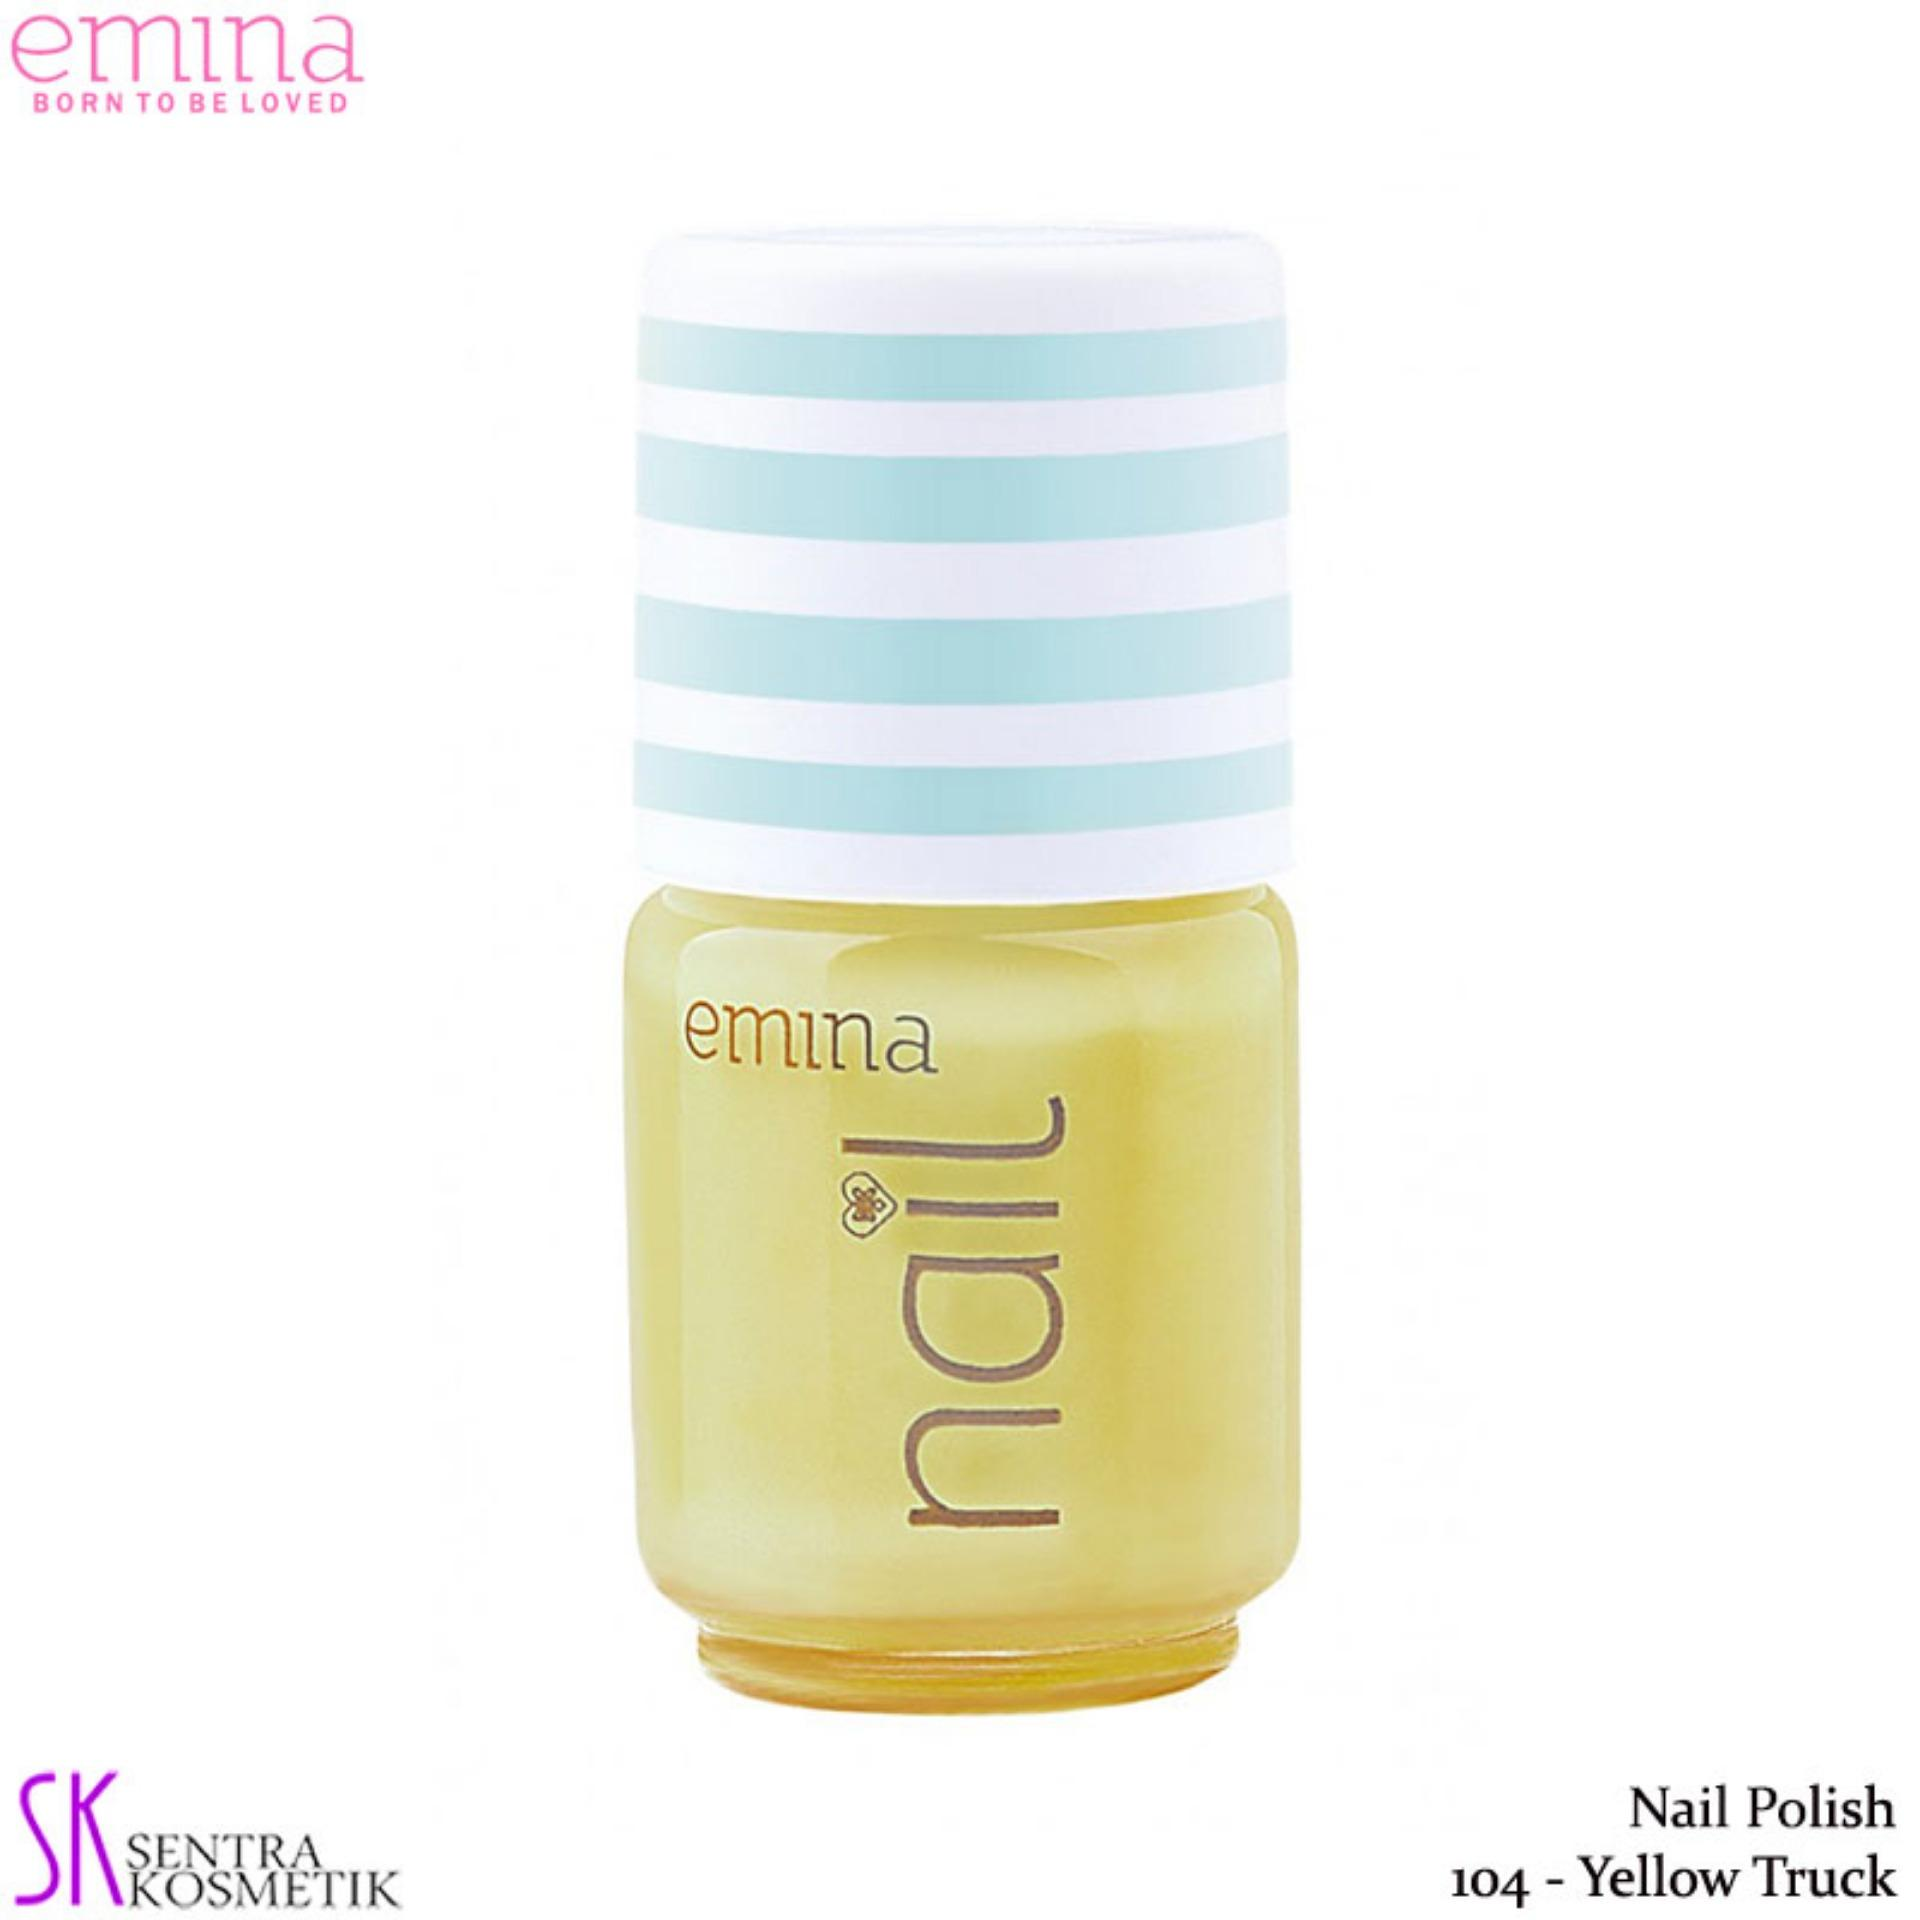 Emina Nail Polish Water Base 104 Yellow Truck - 5 Ml By Sentra Kosmetik.